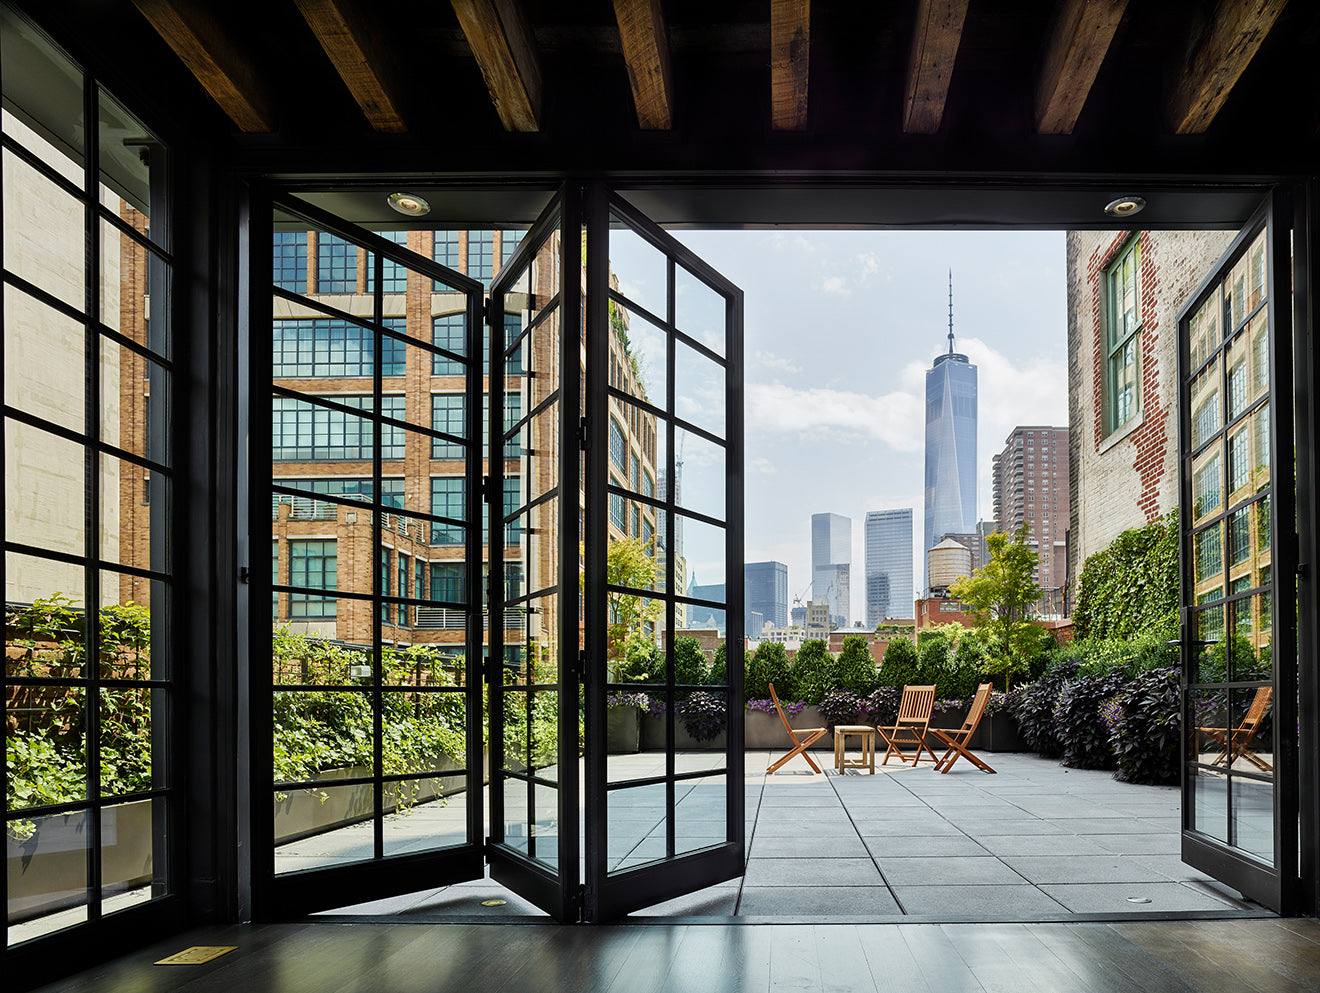 Industrial black windows and doors open up onto the terrace with views of the World Trade Center